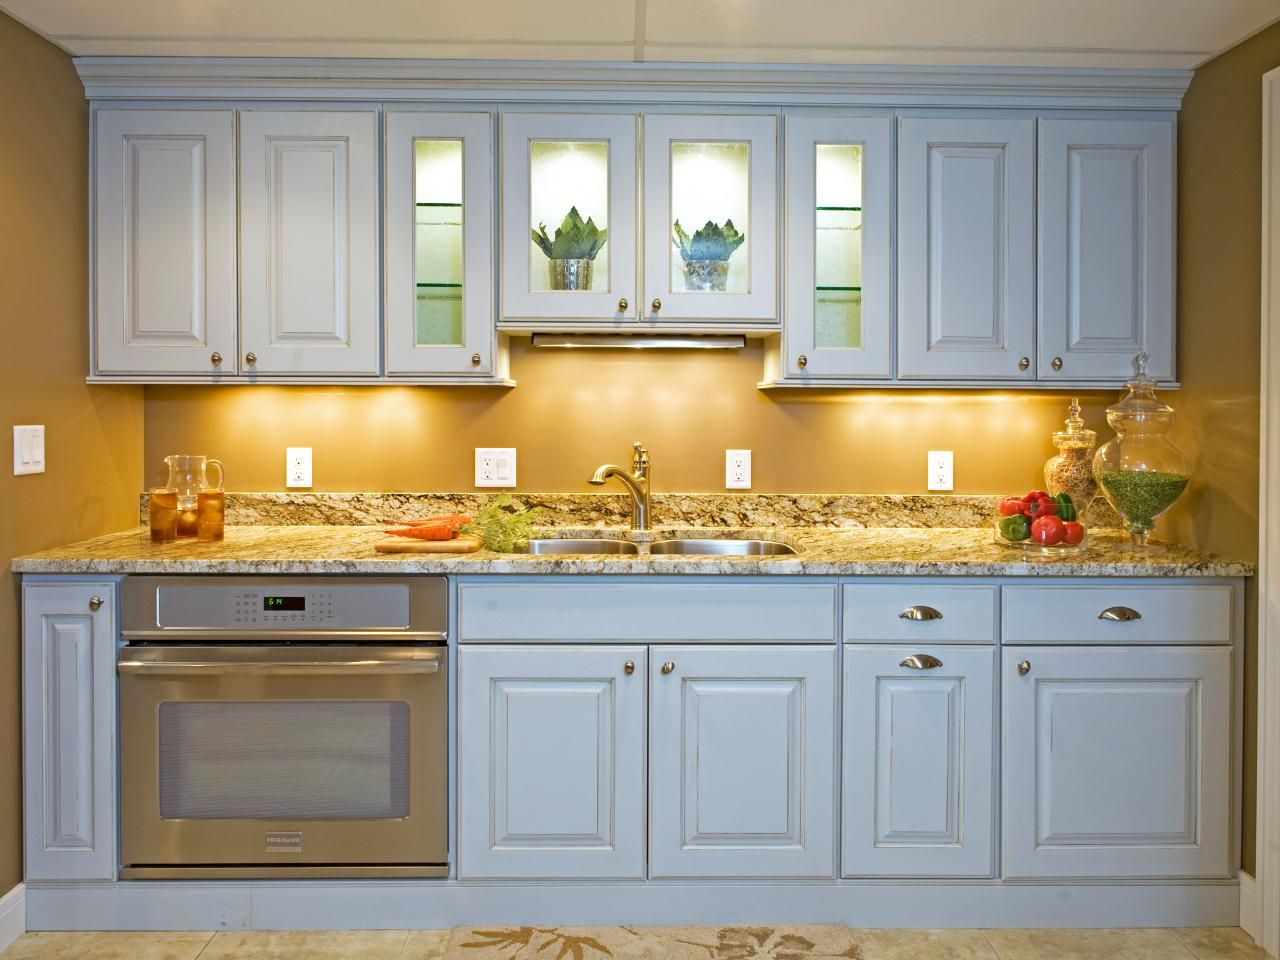 ideas for refacing kitchen cabinets hgtv pictures tips kitchen cabinet styles kitchen on kitchen interior cabinets id=68309